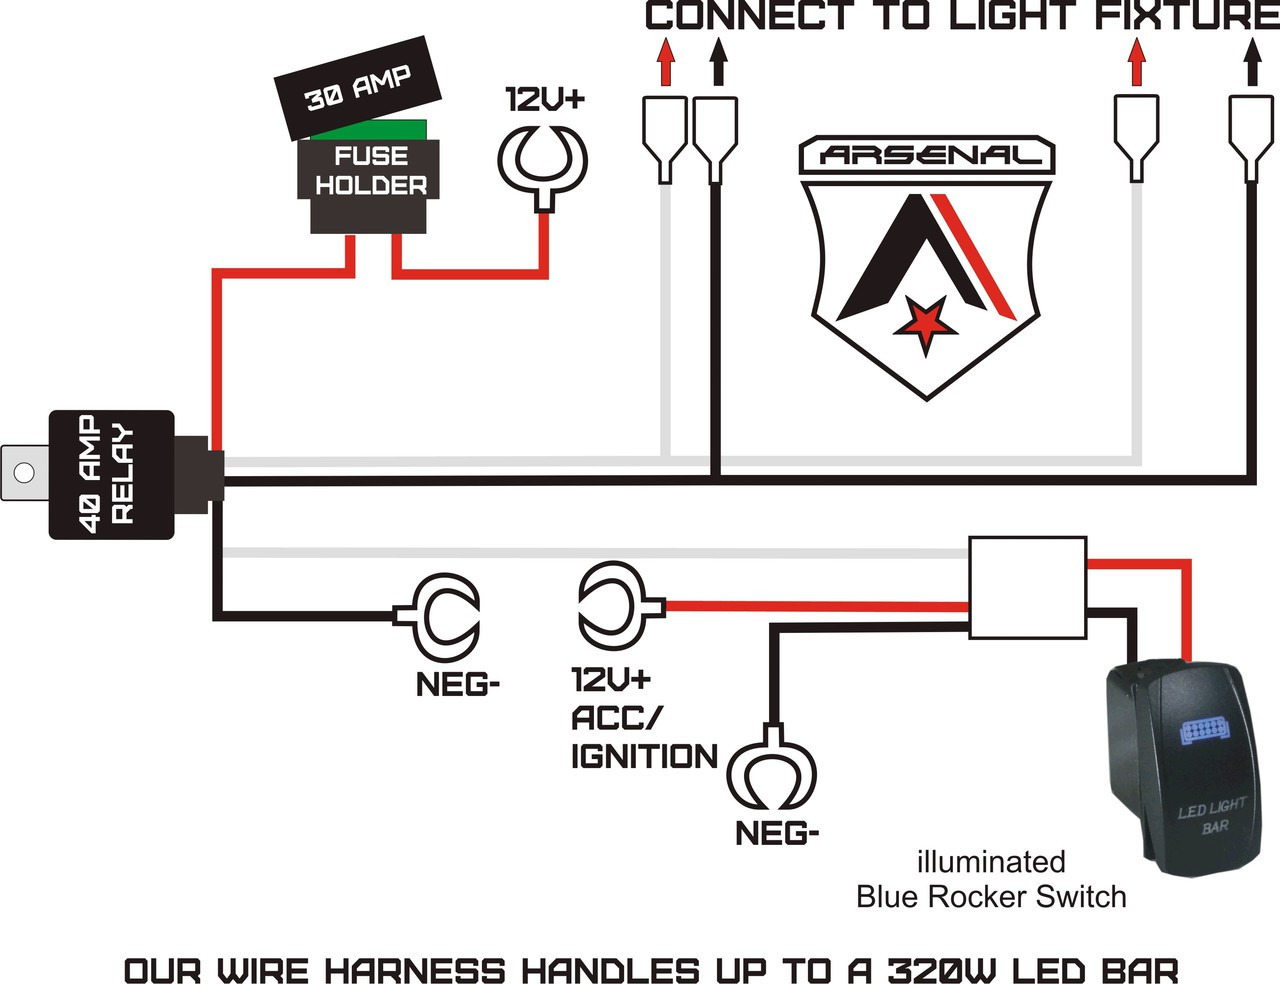 Off Road Wiring Diagram - Wiring Diagram Section Off Road Light Switch Wiring Diagram on